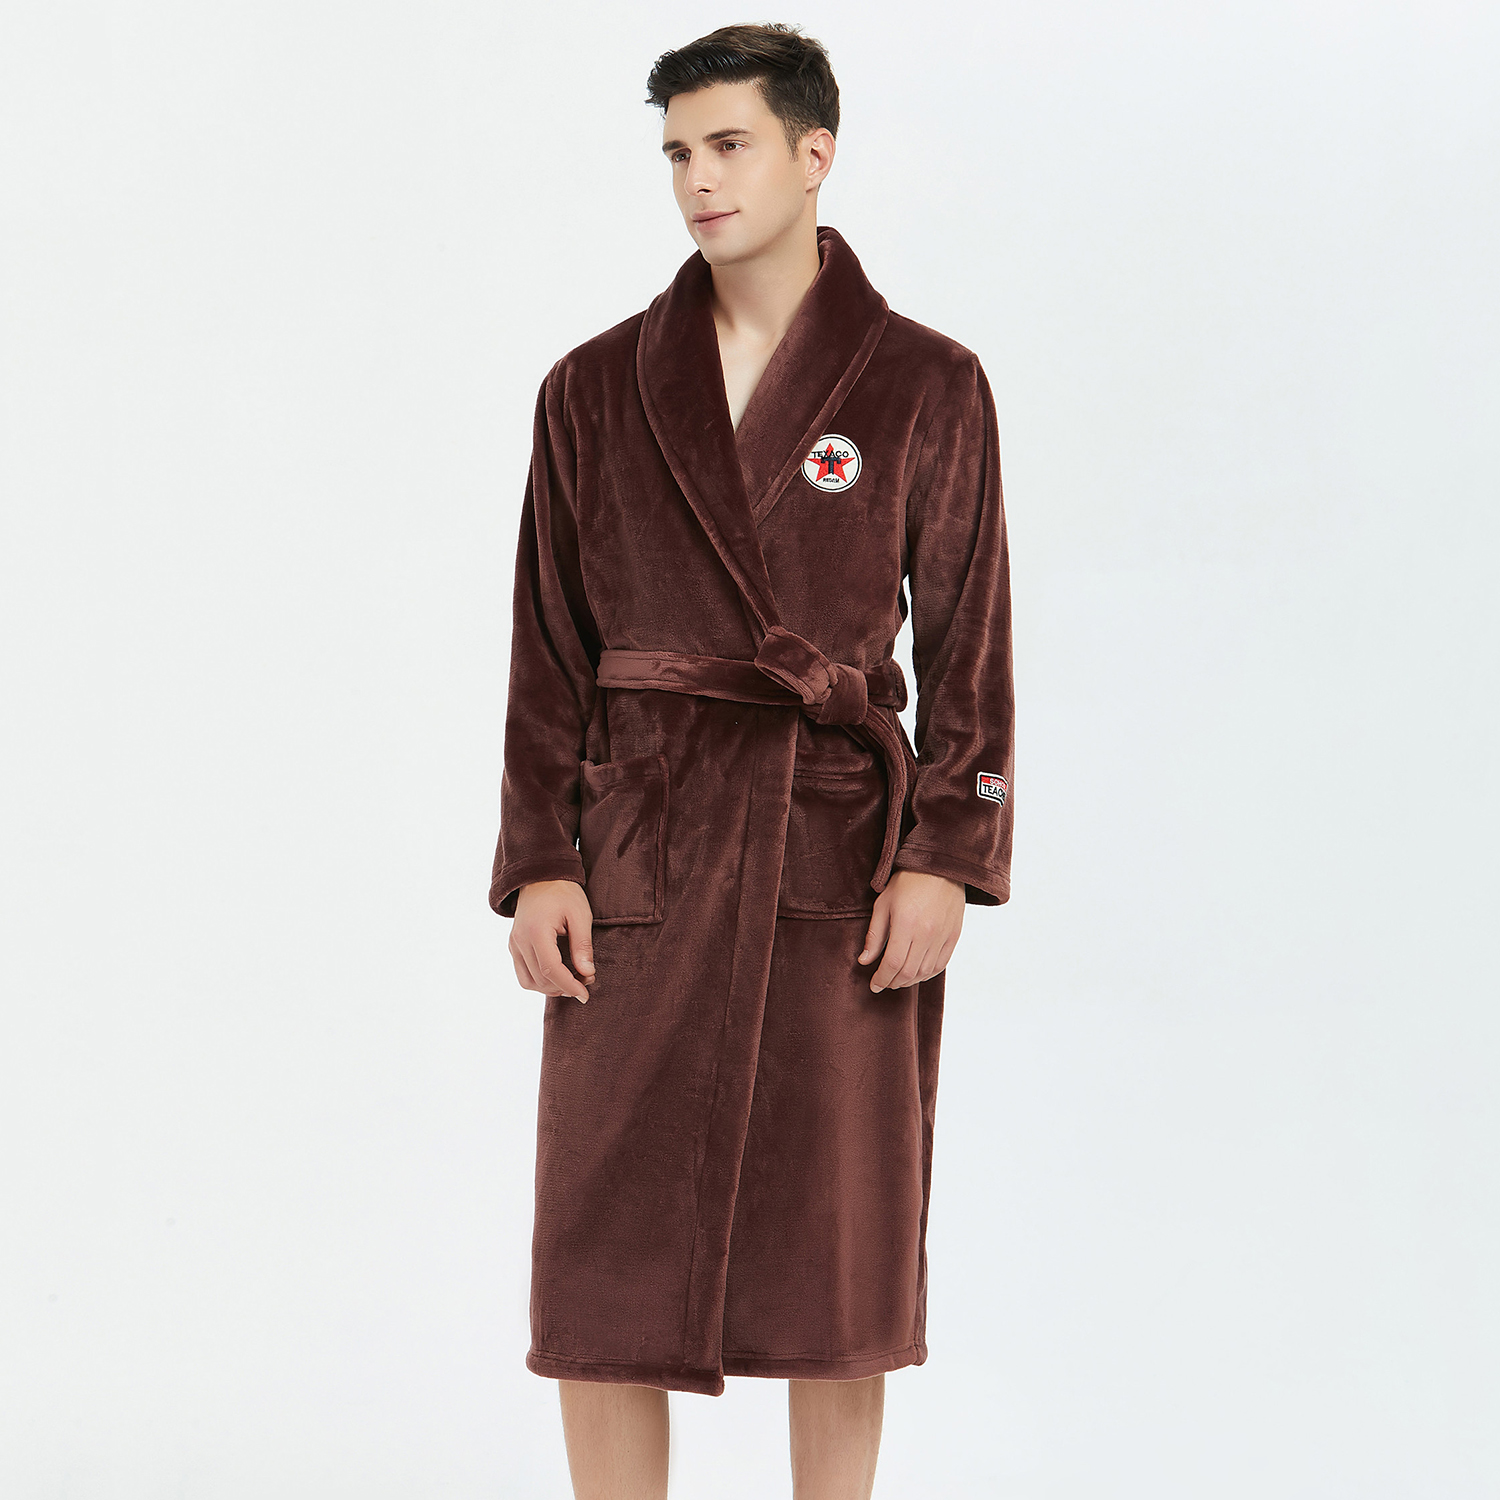 Casual Belt Bathrobe Gown Homewear Winter Keep Warm Men Robe Kimono Gown Sleepwear Flannel Nightwear Nightgown Soft Nightdress